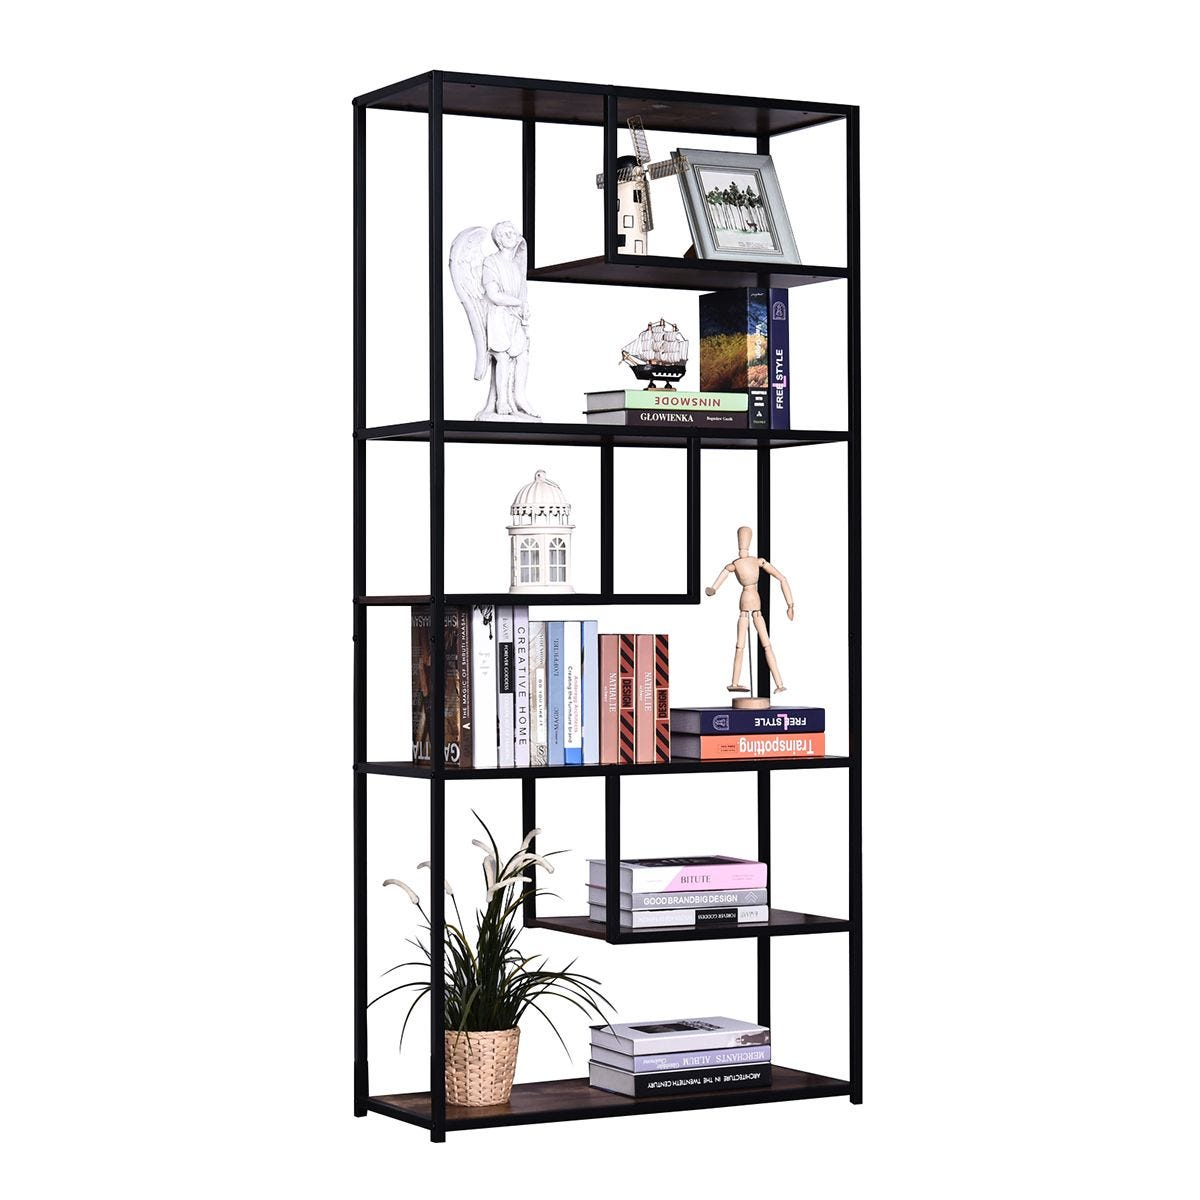 Industrial Style Bookcase Shelving Display Unit 6 Tier Rustic Brown and Black